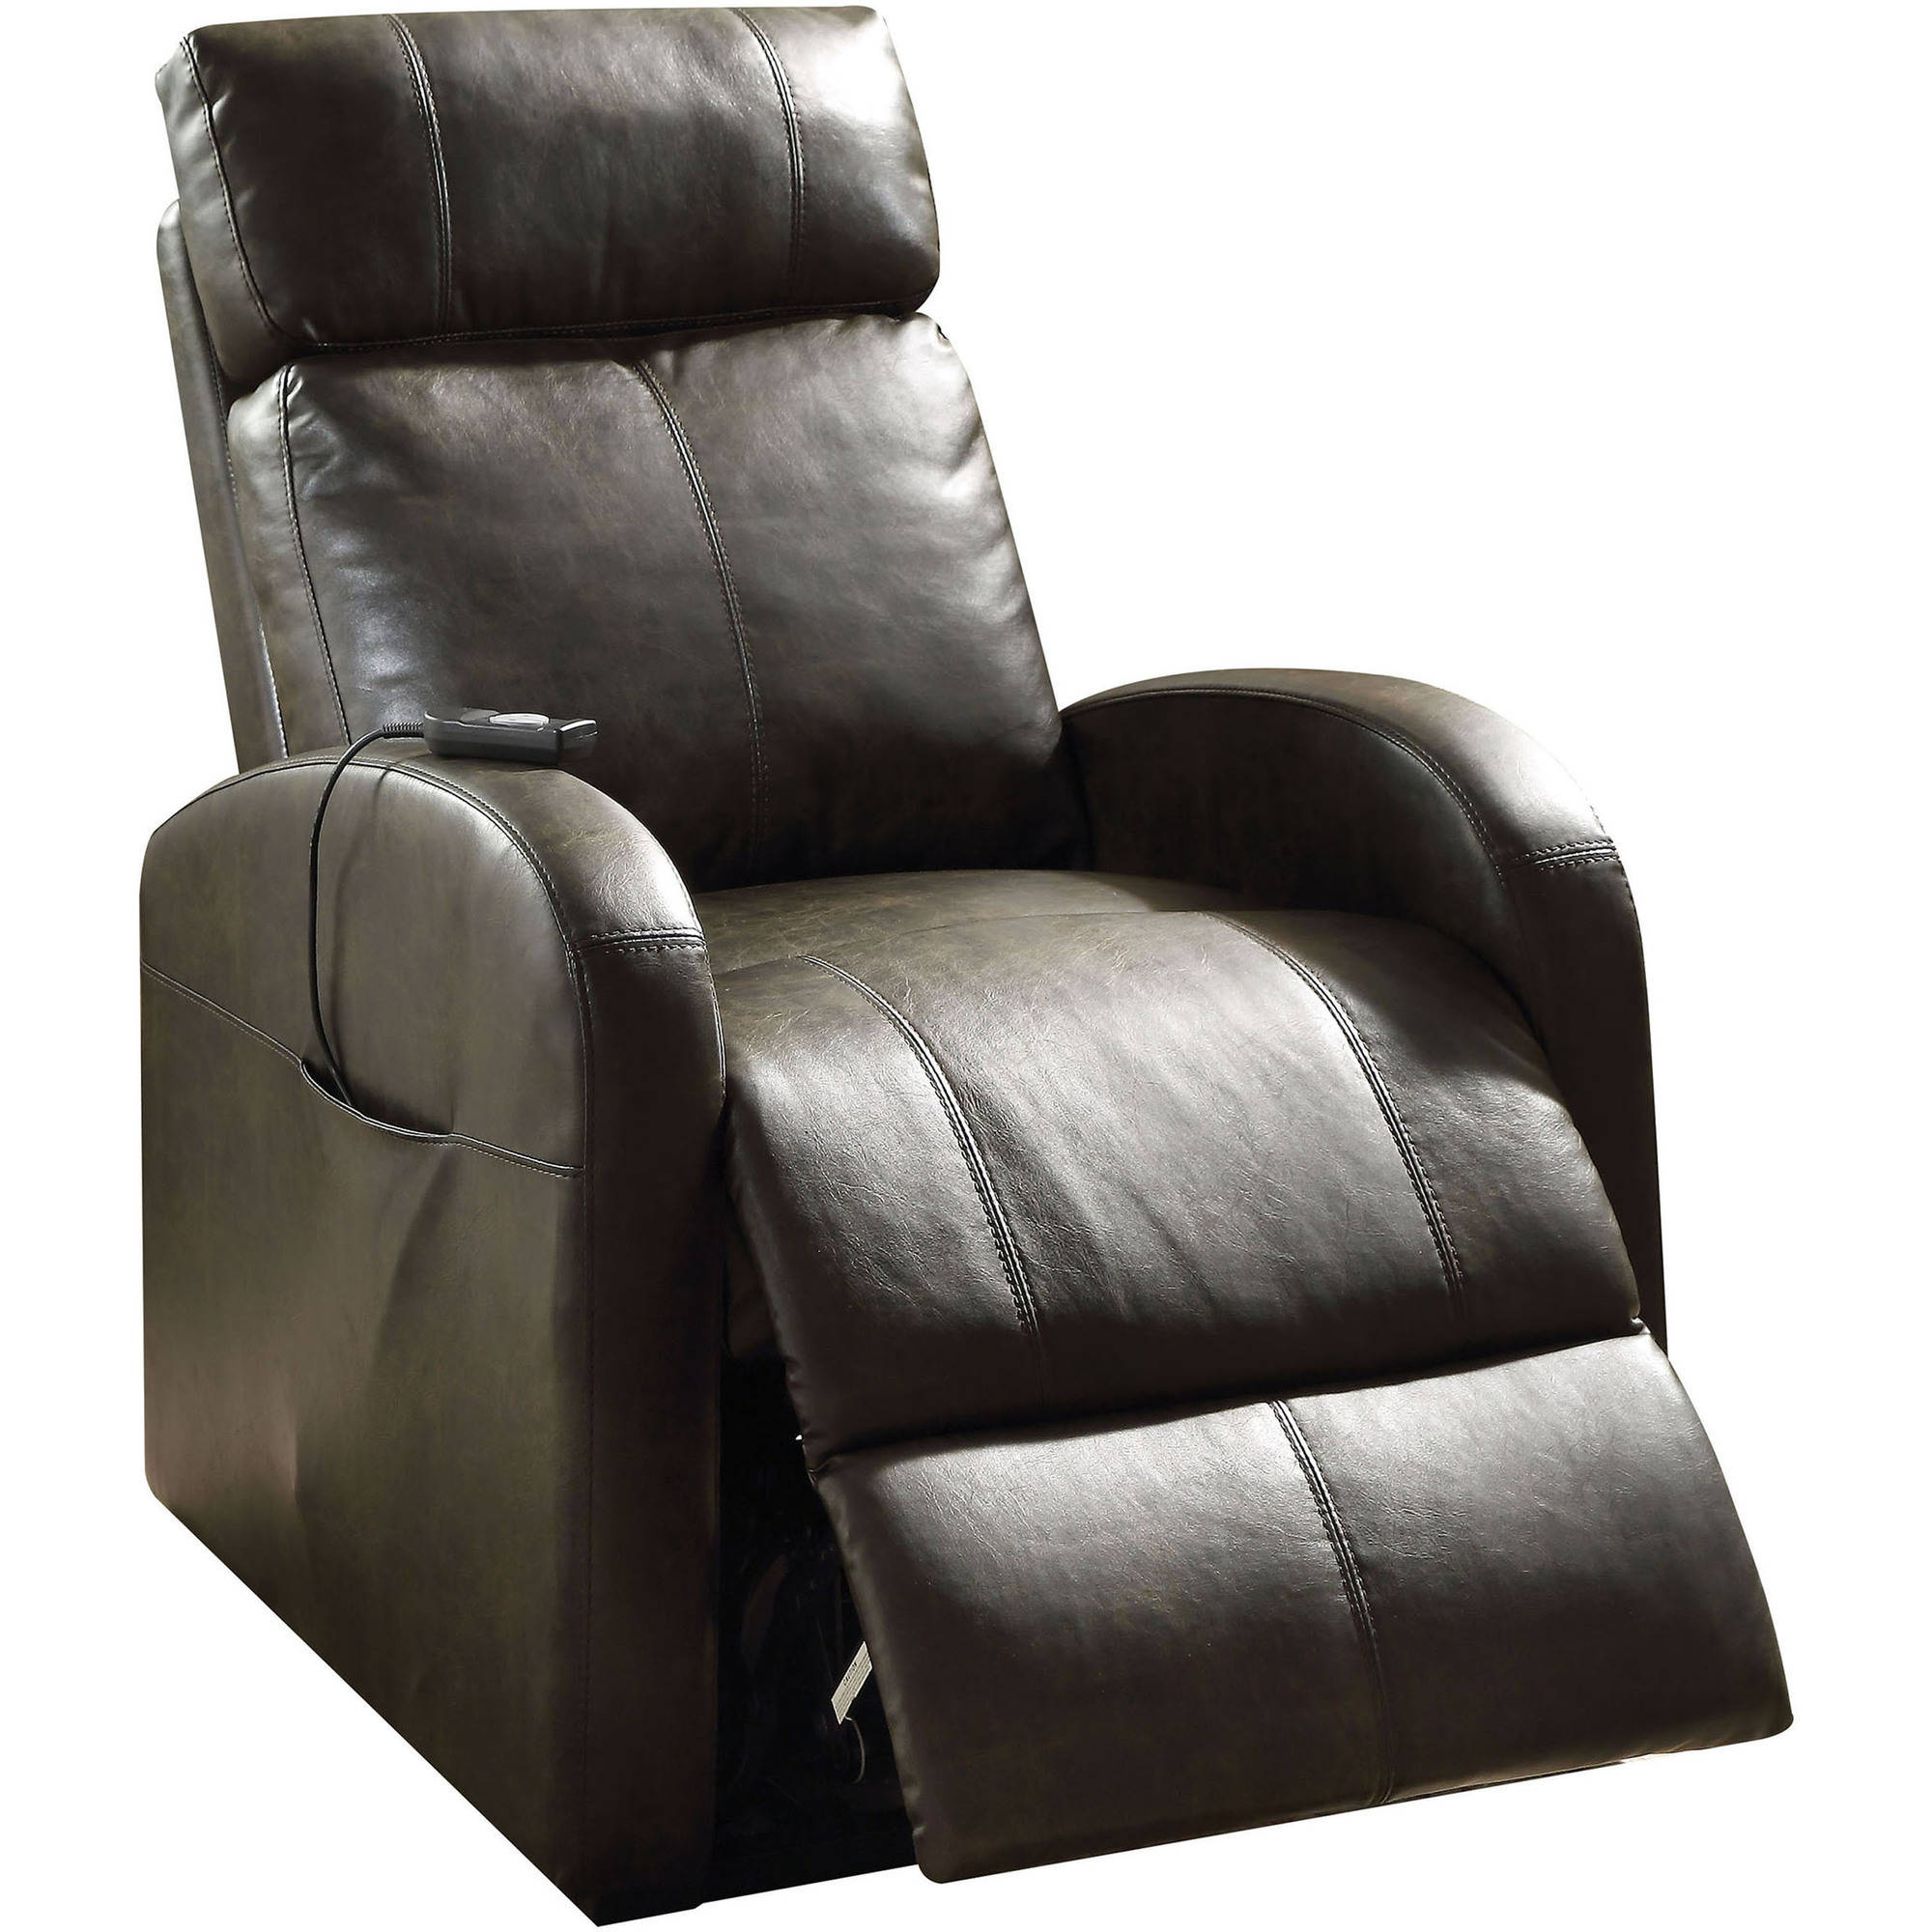 ACME Ricardo Recliner with Power Lift Multiple Colors  sc 1 st  Walmart & ACME Ricardo Recliner with Power Lift Multiple Colors - Walmart.com islam-shia.org